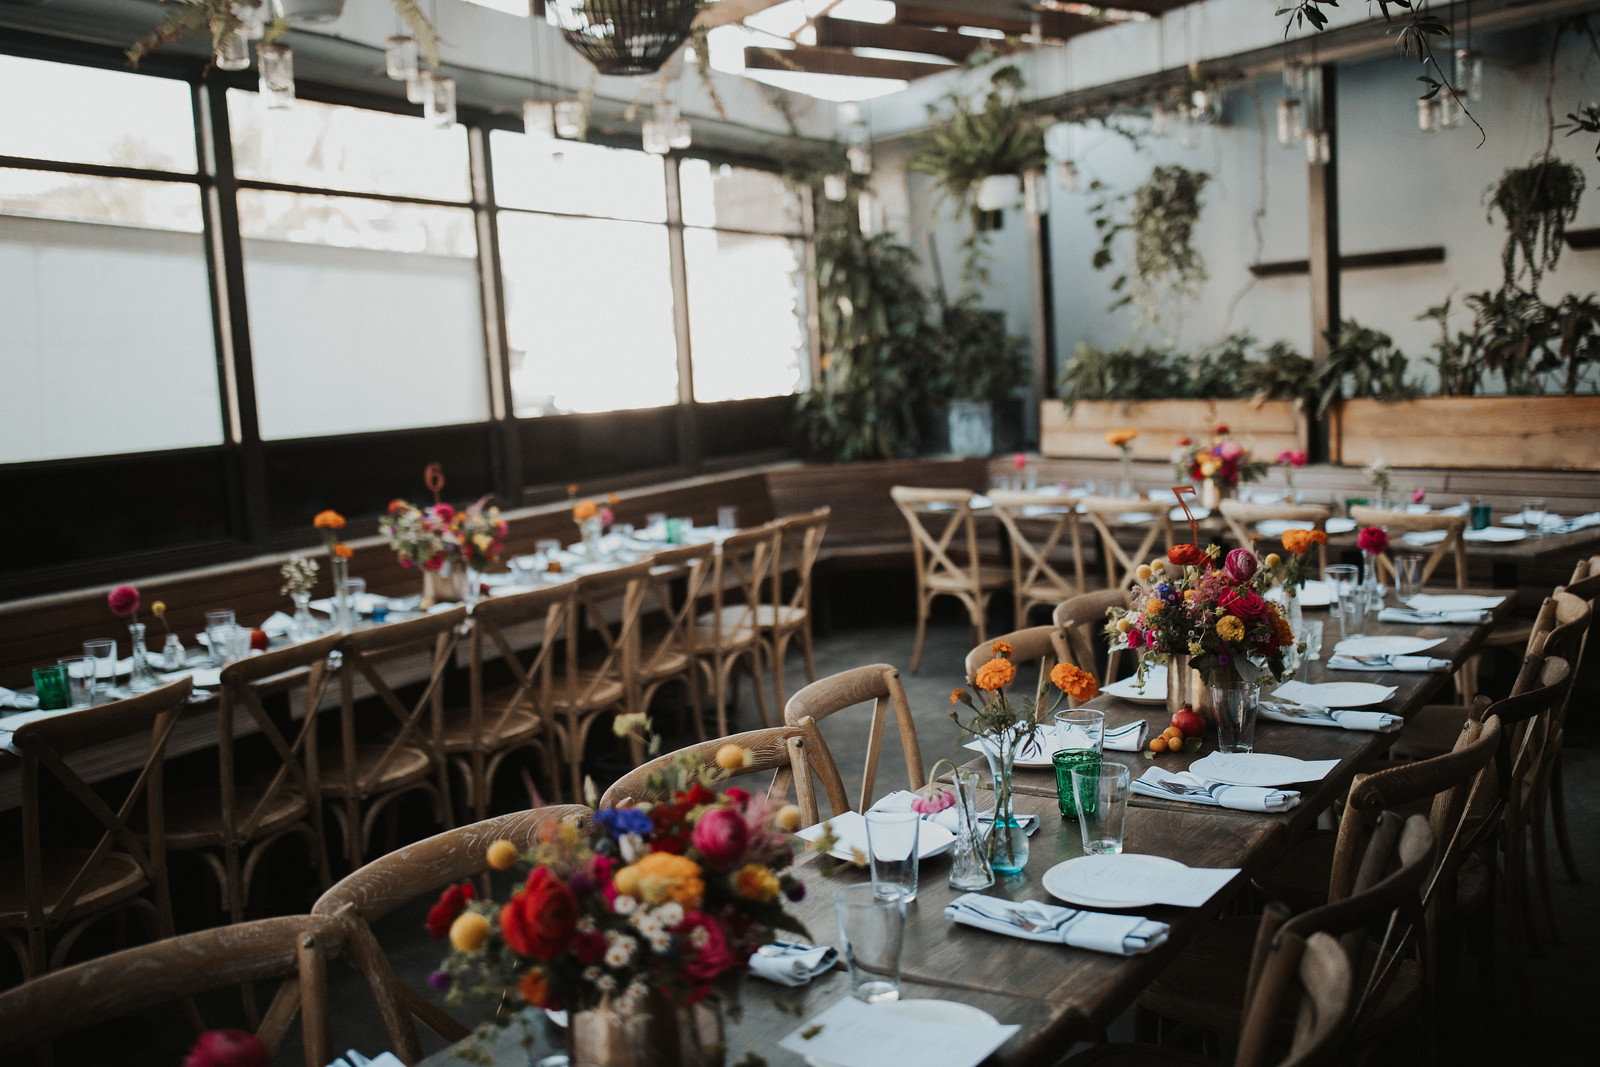 Erica and Rahul's wedding reception- photography by Ariele Chapman